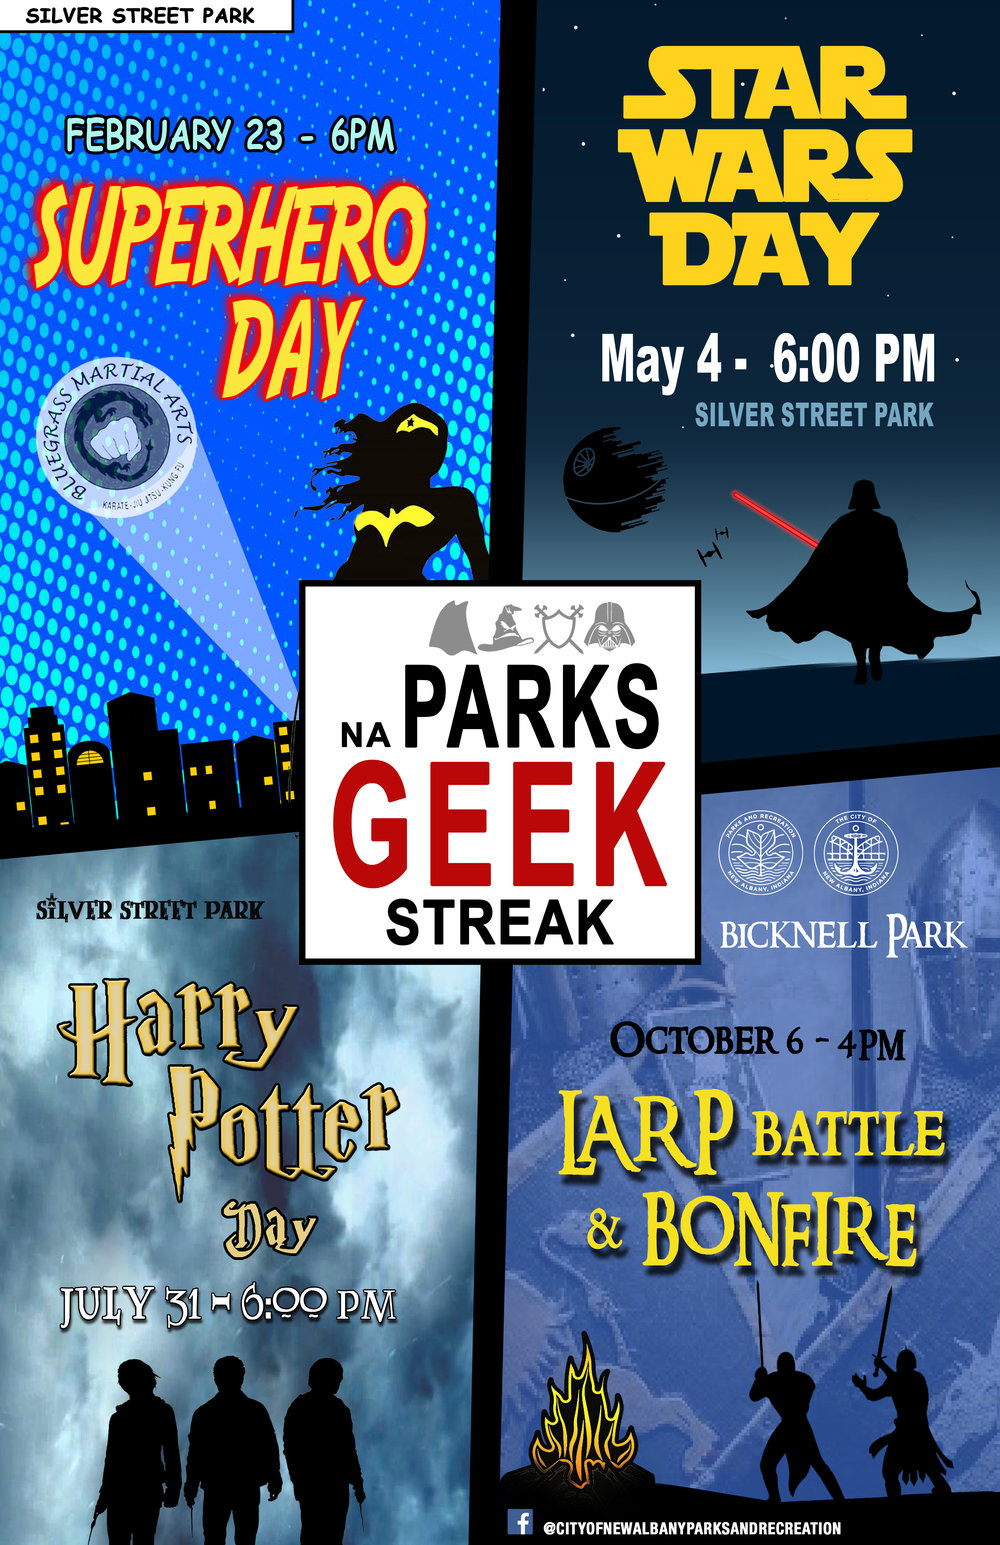 Geek Streak 2018 - Become a Superhero.Learn the ways of the Force.Go through the Sorting Hat Ceremony.Fight off evil orcs and wizards.Unleash your inner-geek with with this event series tailored to comic, fantasy, and science fiction fans. These family-friendly events are designed to share some of these classic stories with the next generation of kids.All events are free and open to the public.For any questions about these events, please call 812-949-5448.